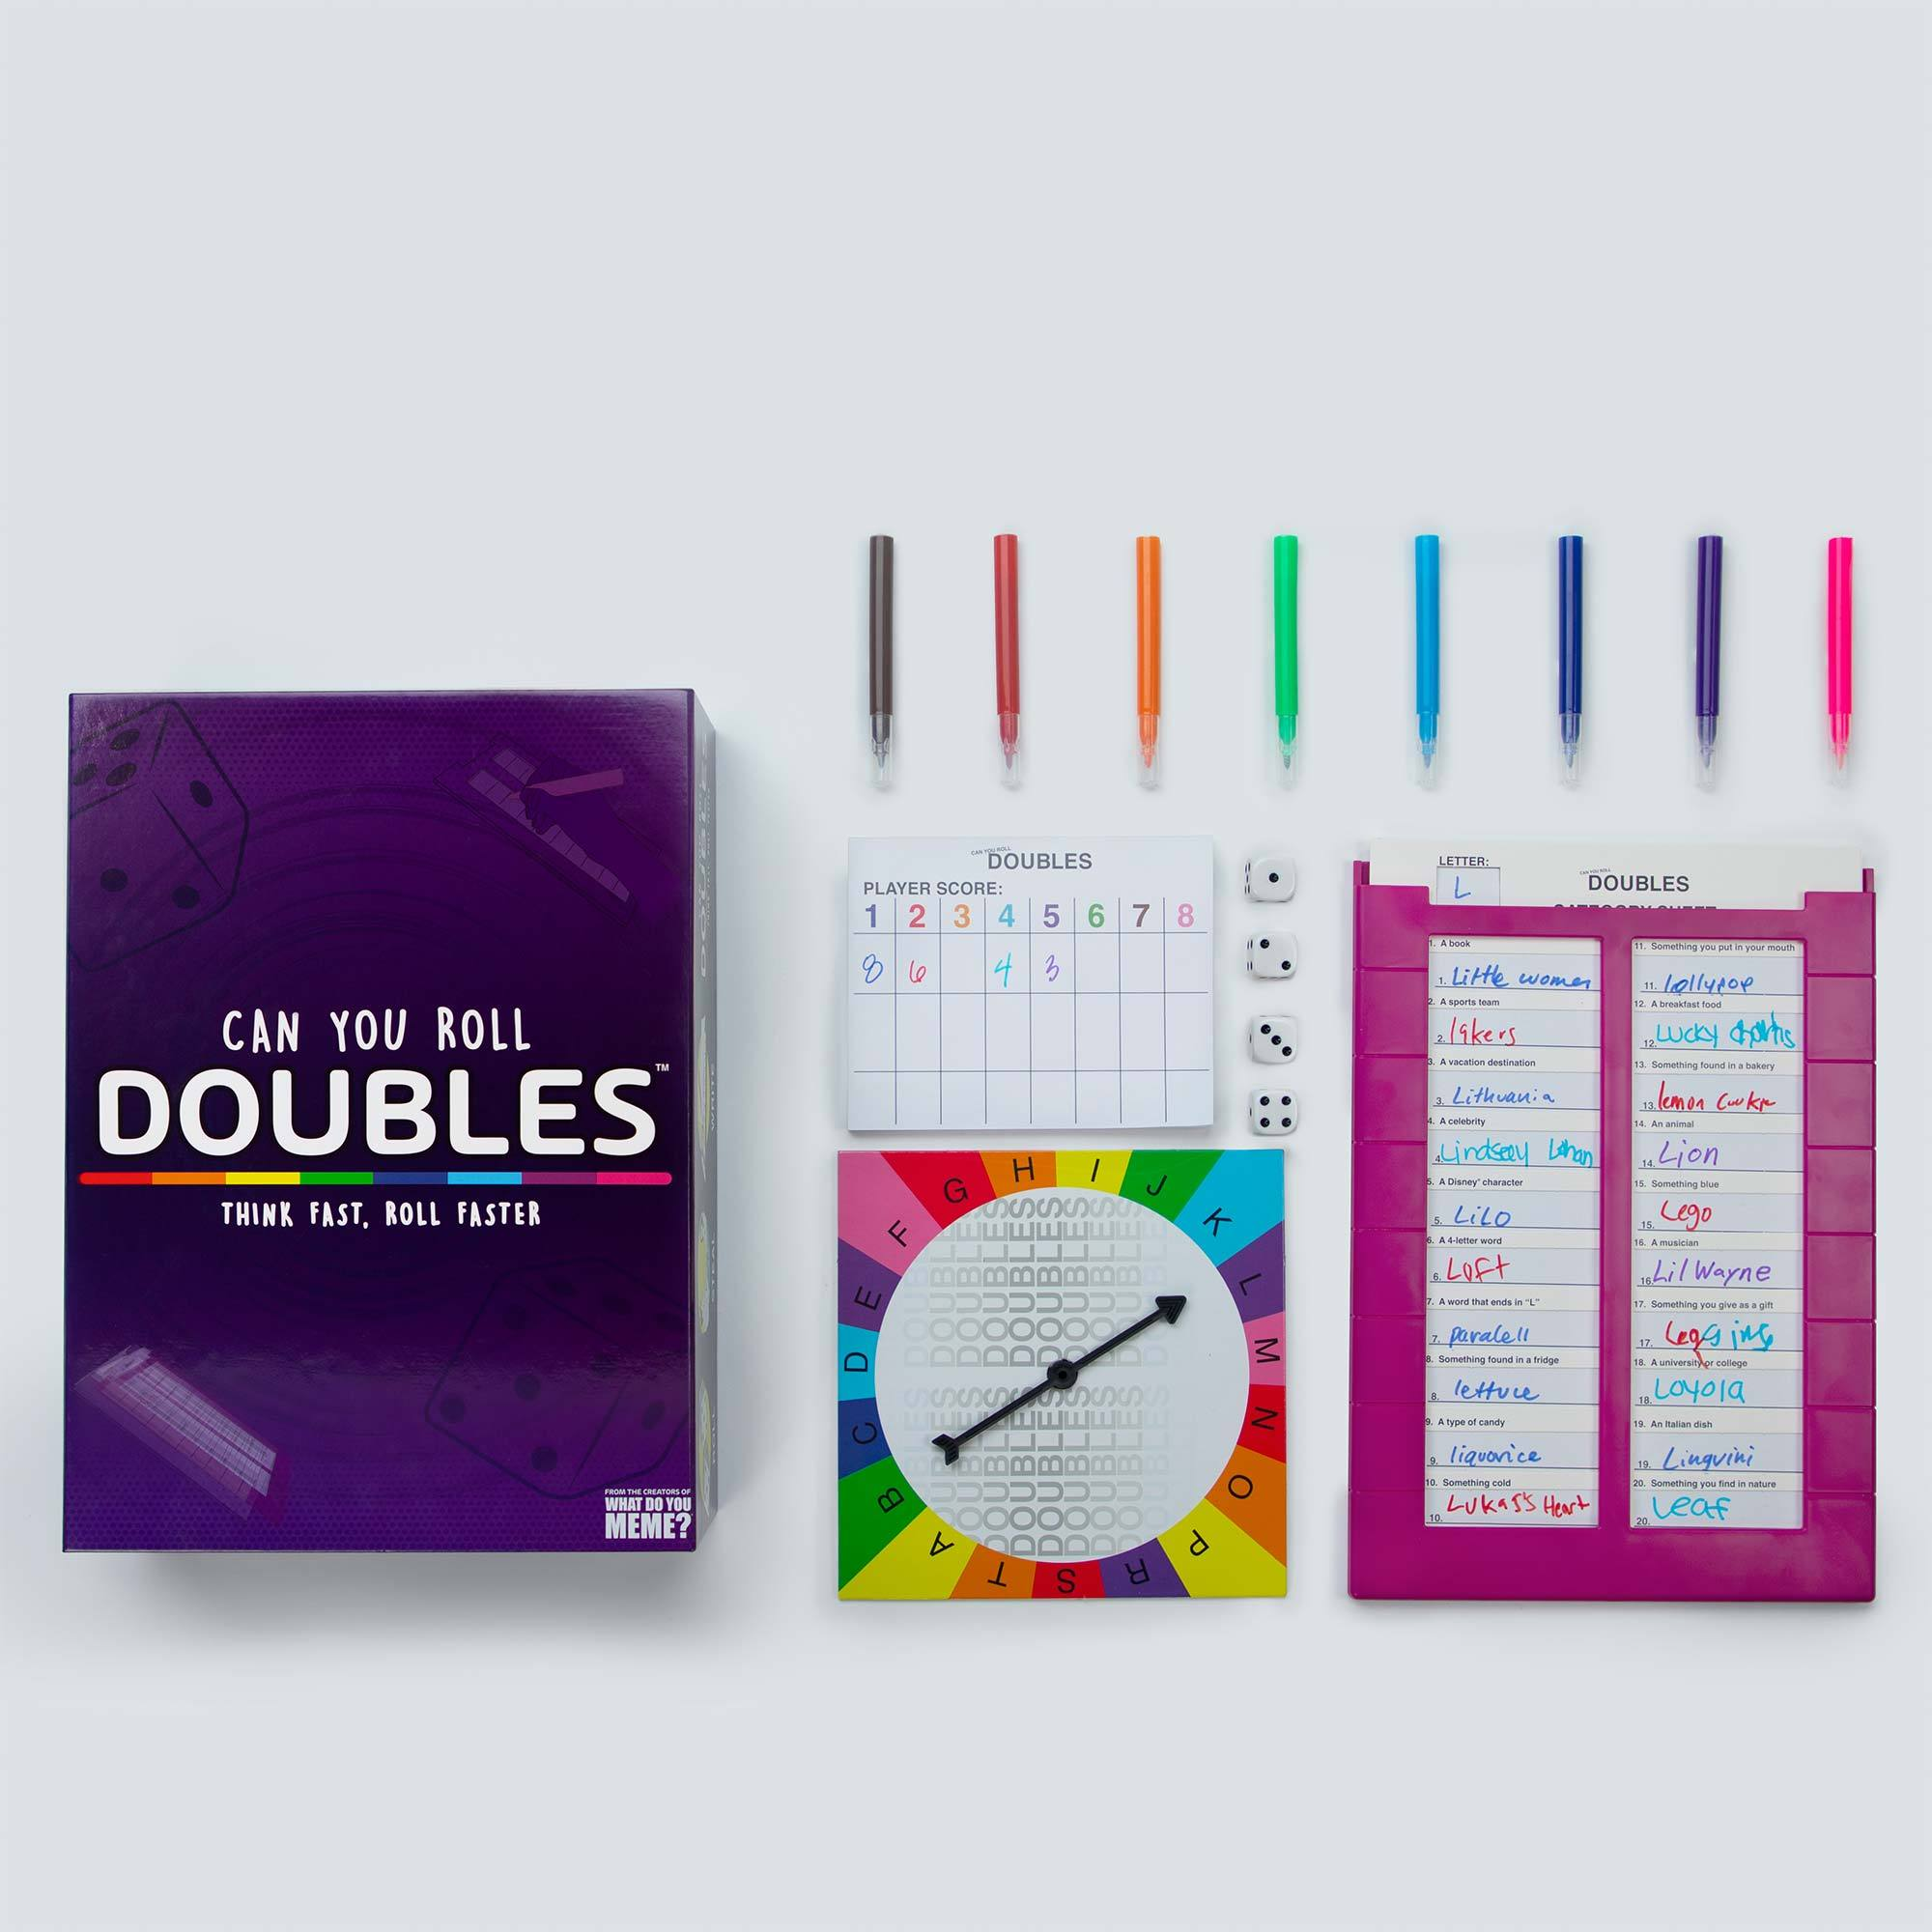 Doubles! - Family Friendly Party Game by What Do You Meme™